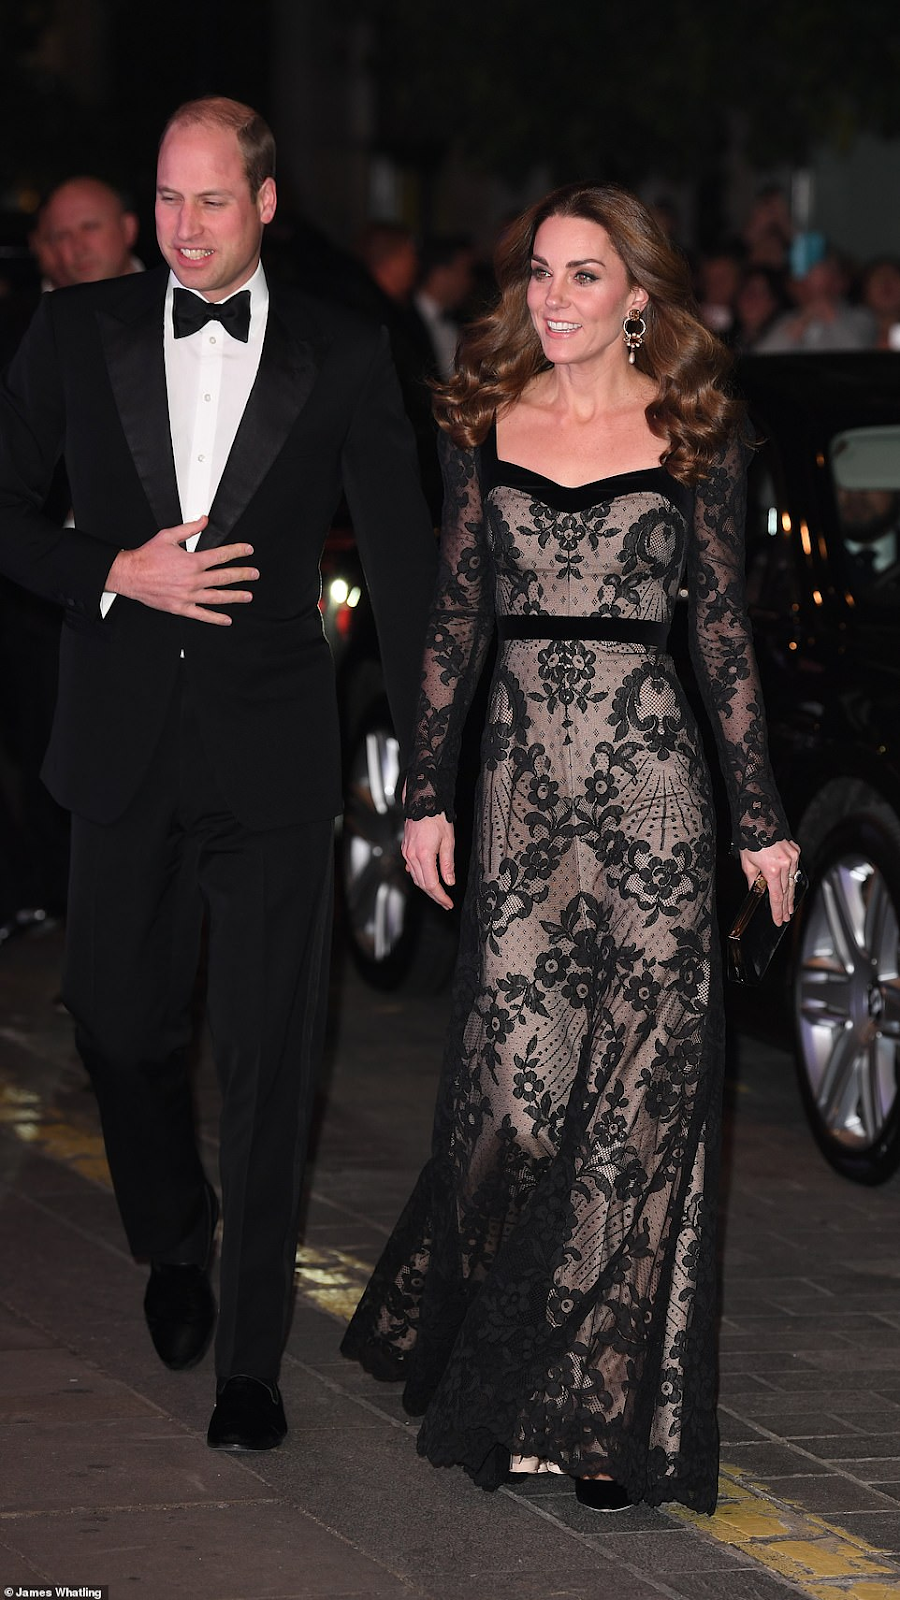 Prince William and Duchess Kate Attend the Royal Variety Performance at the London Palladium